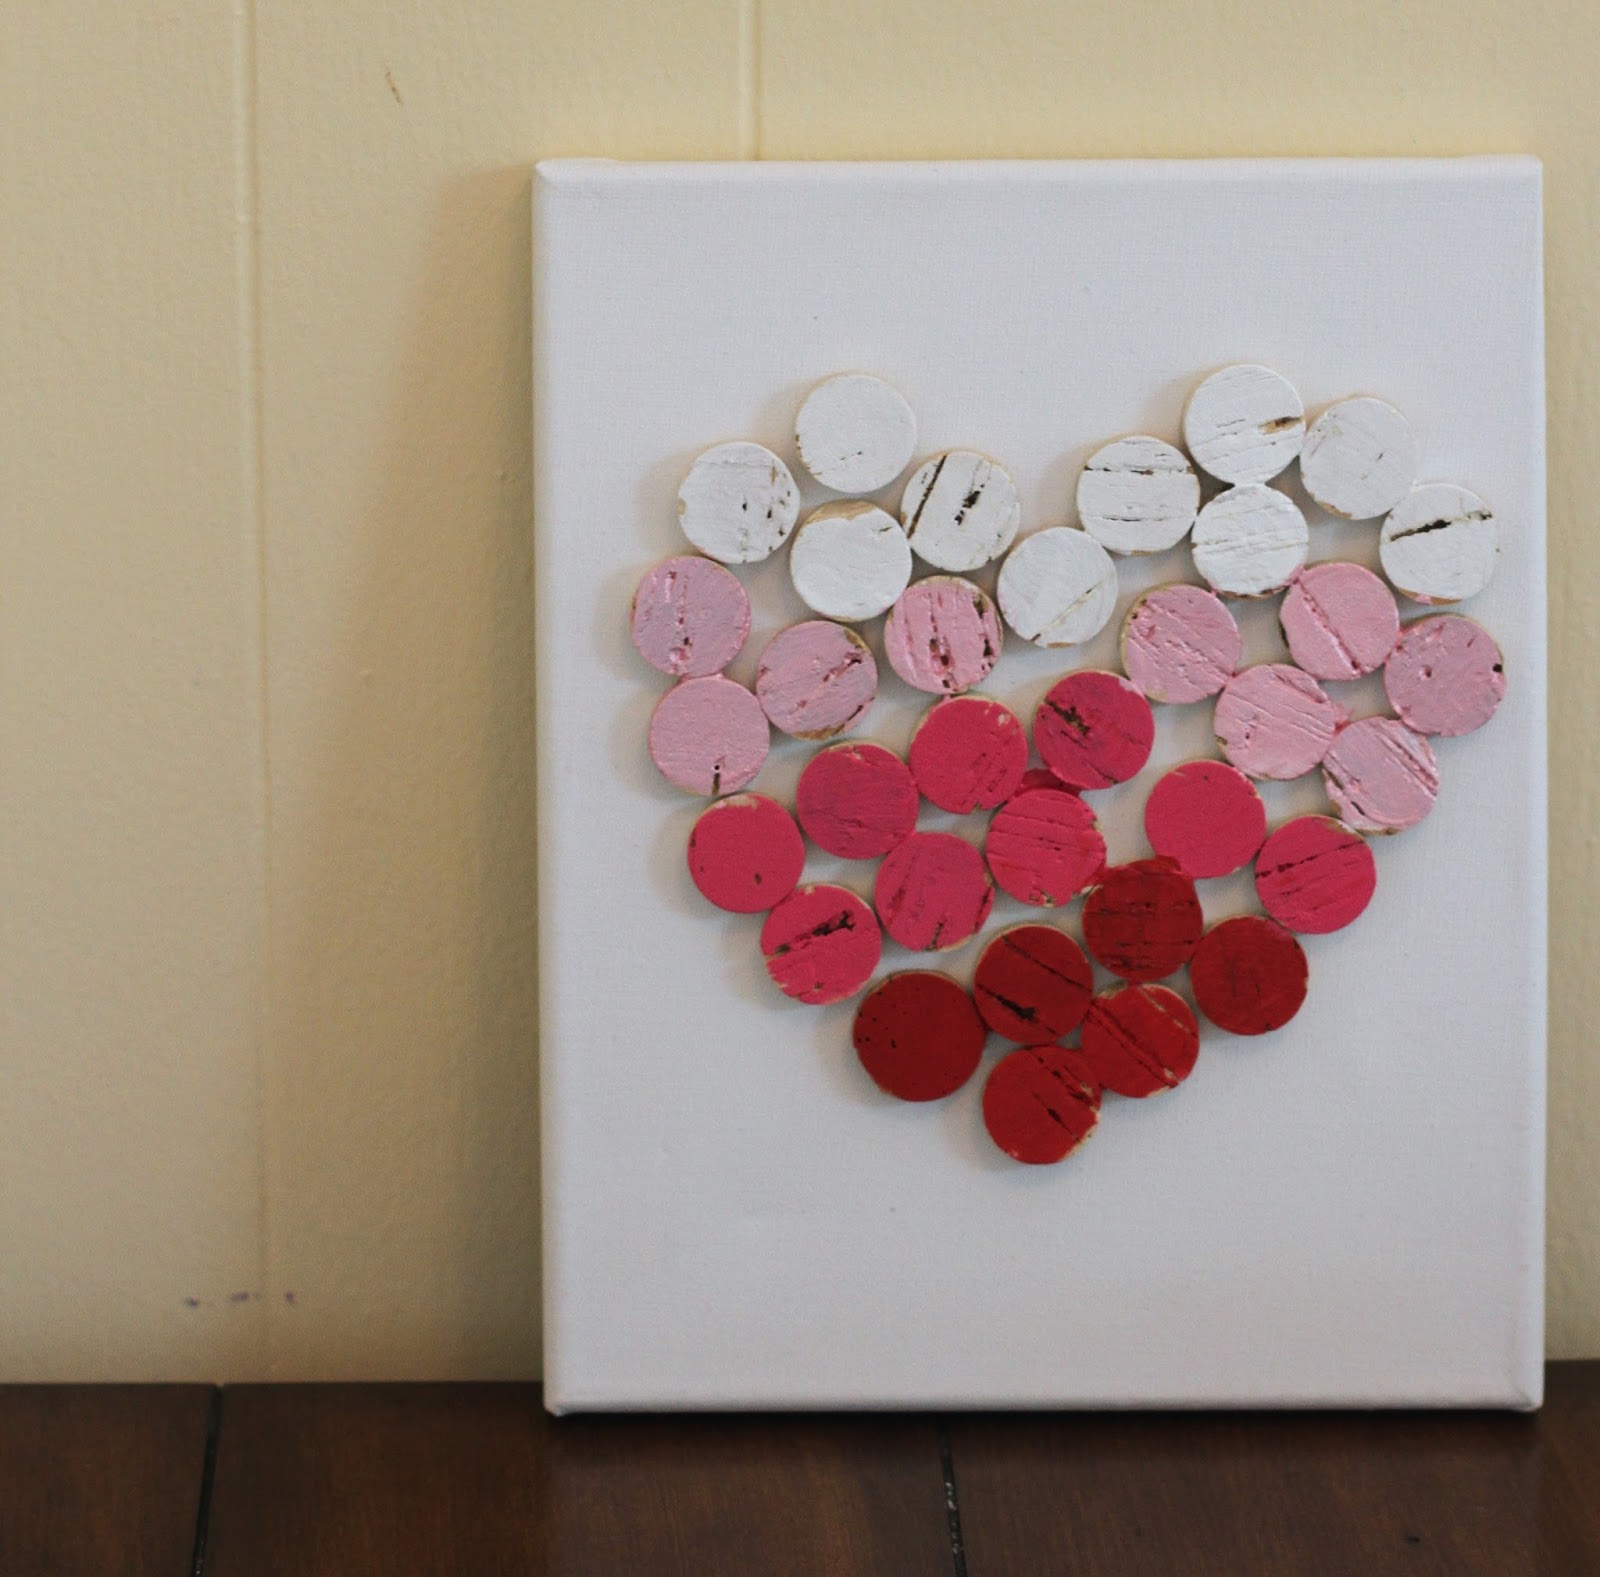 Easy Diy Valentine S Day Decor 2 Ideas For A Canvas The Chirping Moms